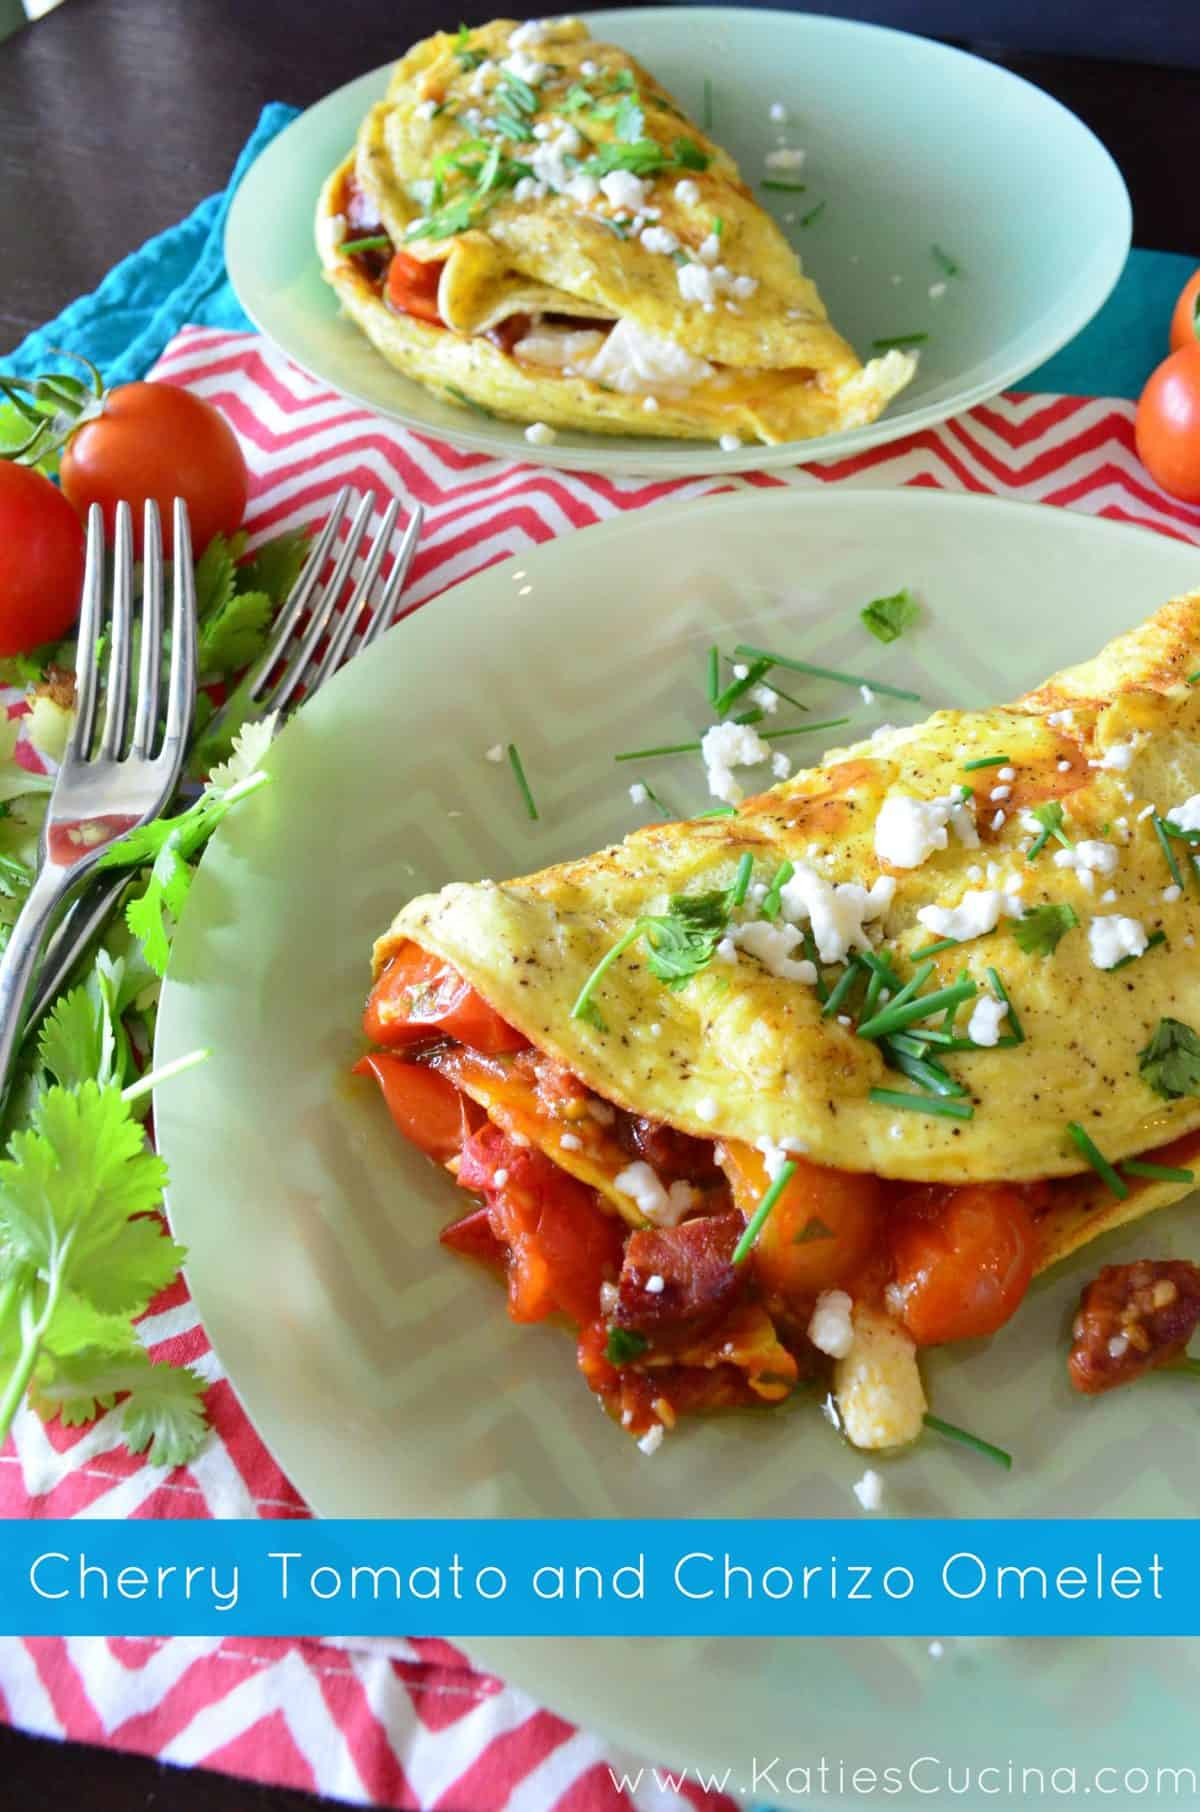 Cherry Tomato and Chorizo Omelet via KatiesCucina.com